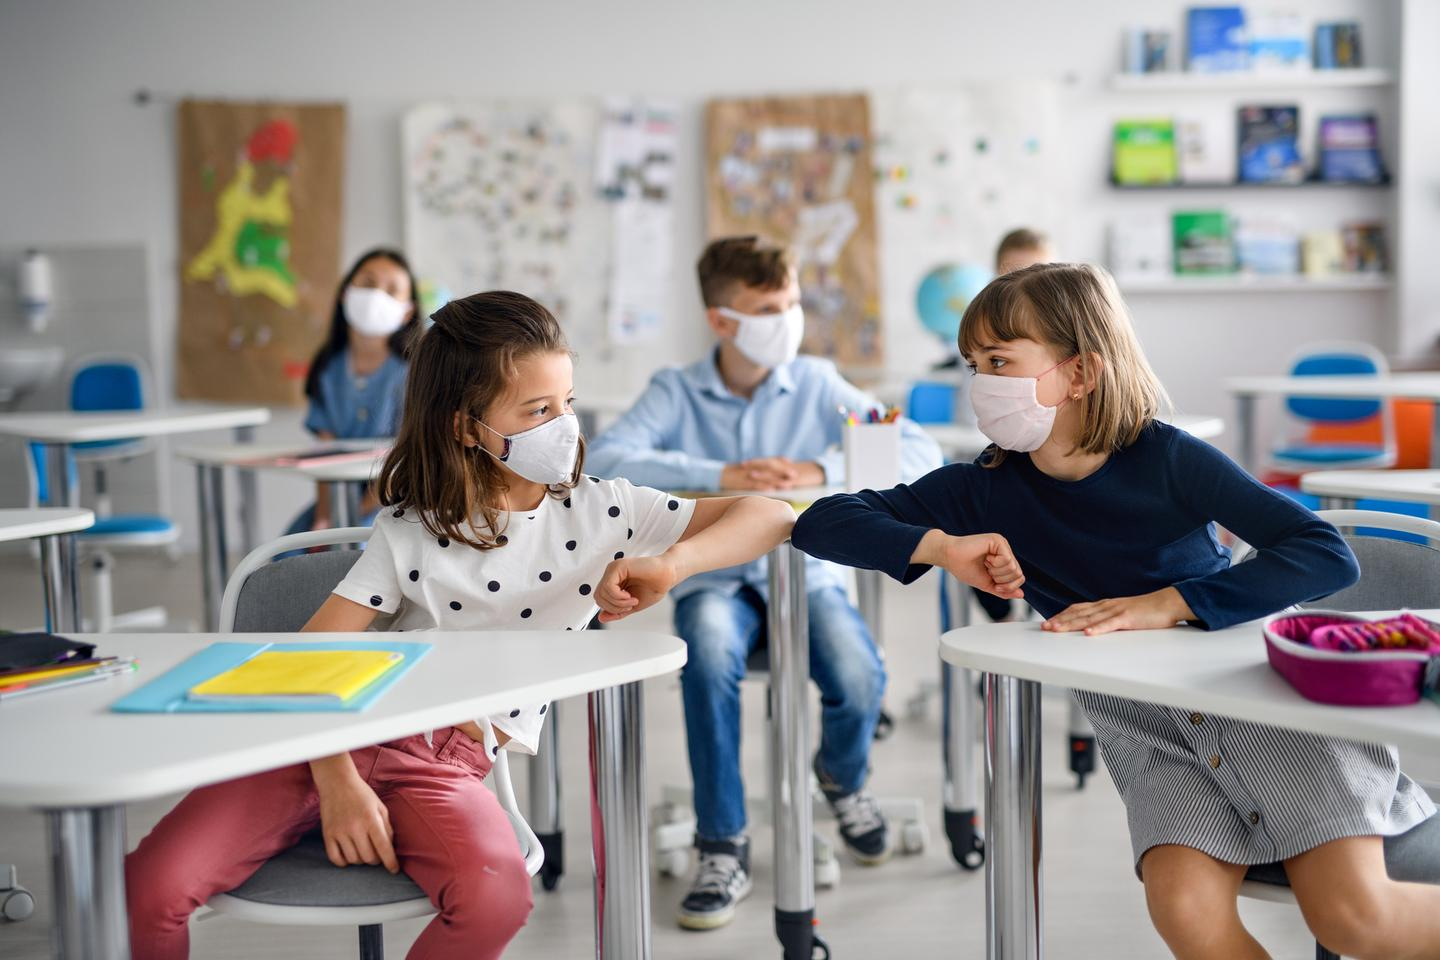 The new CDC research affirms mask mandates in schools are effective at reducing the spread of COVID-19